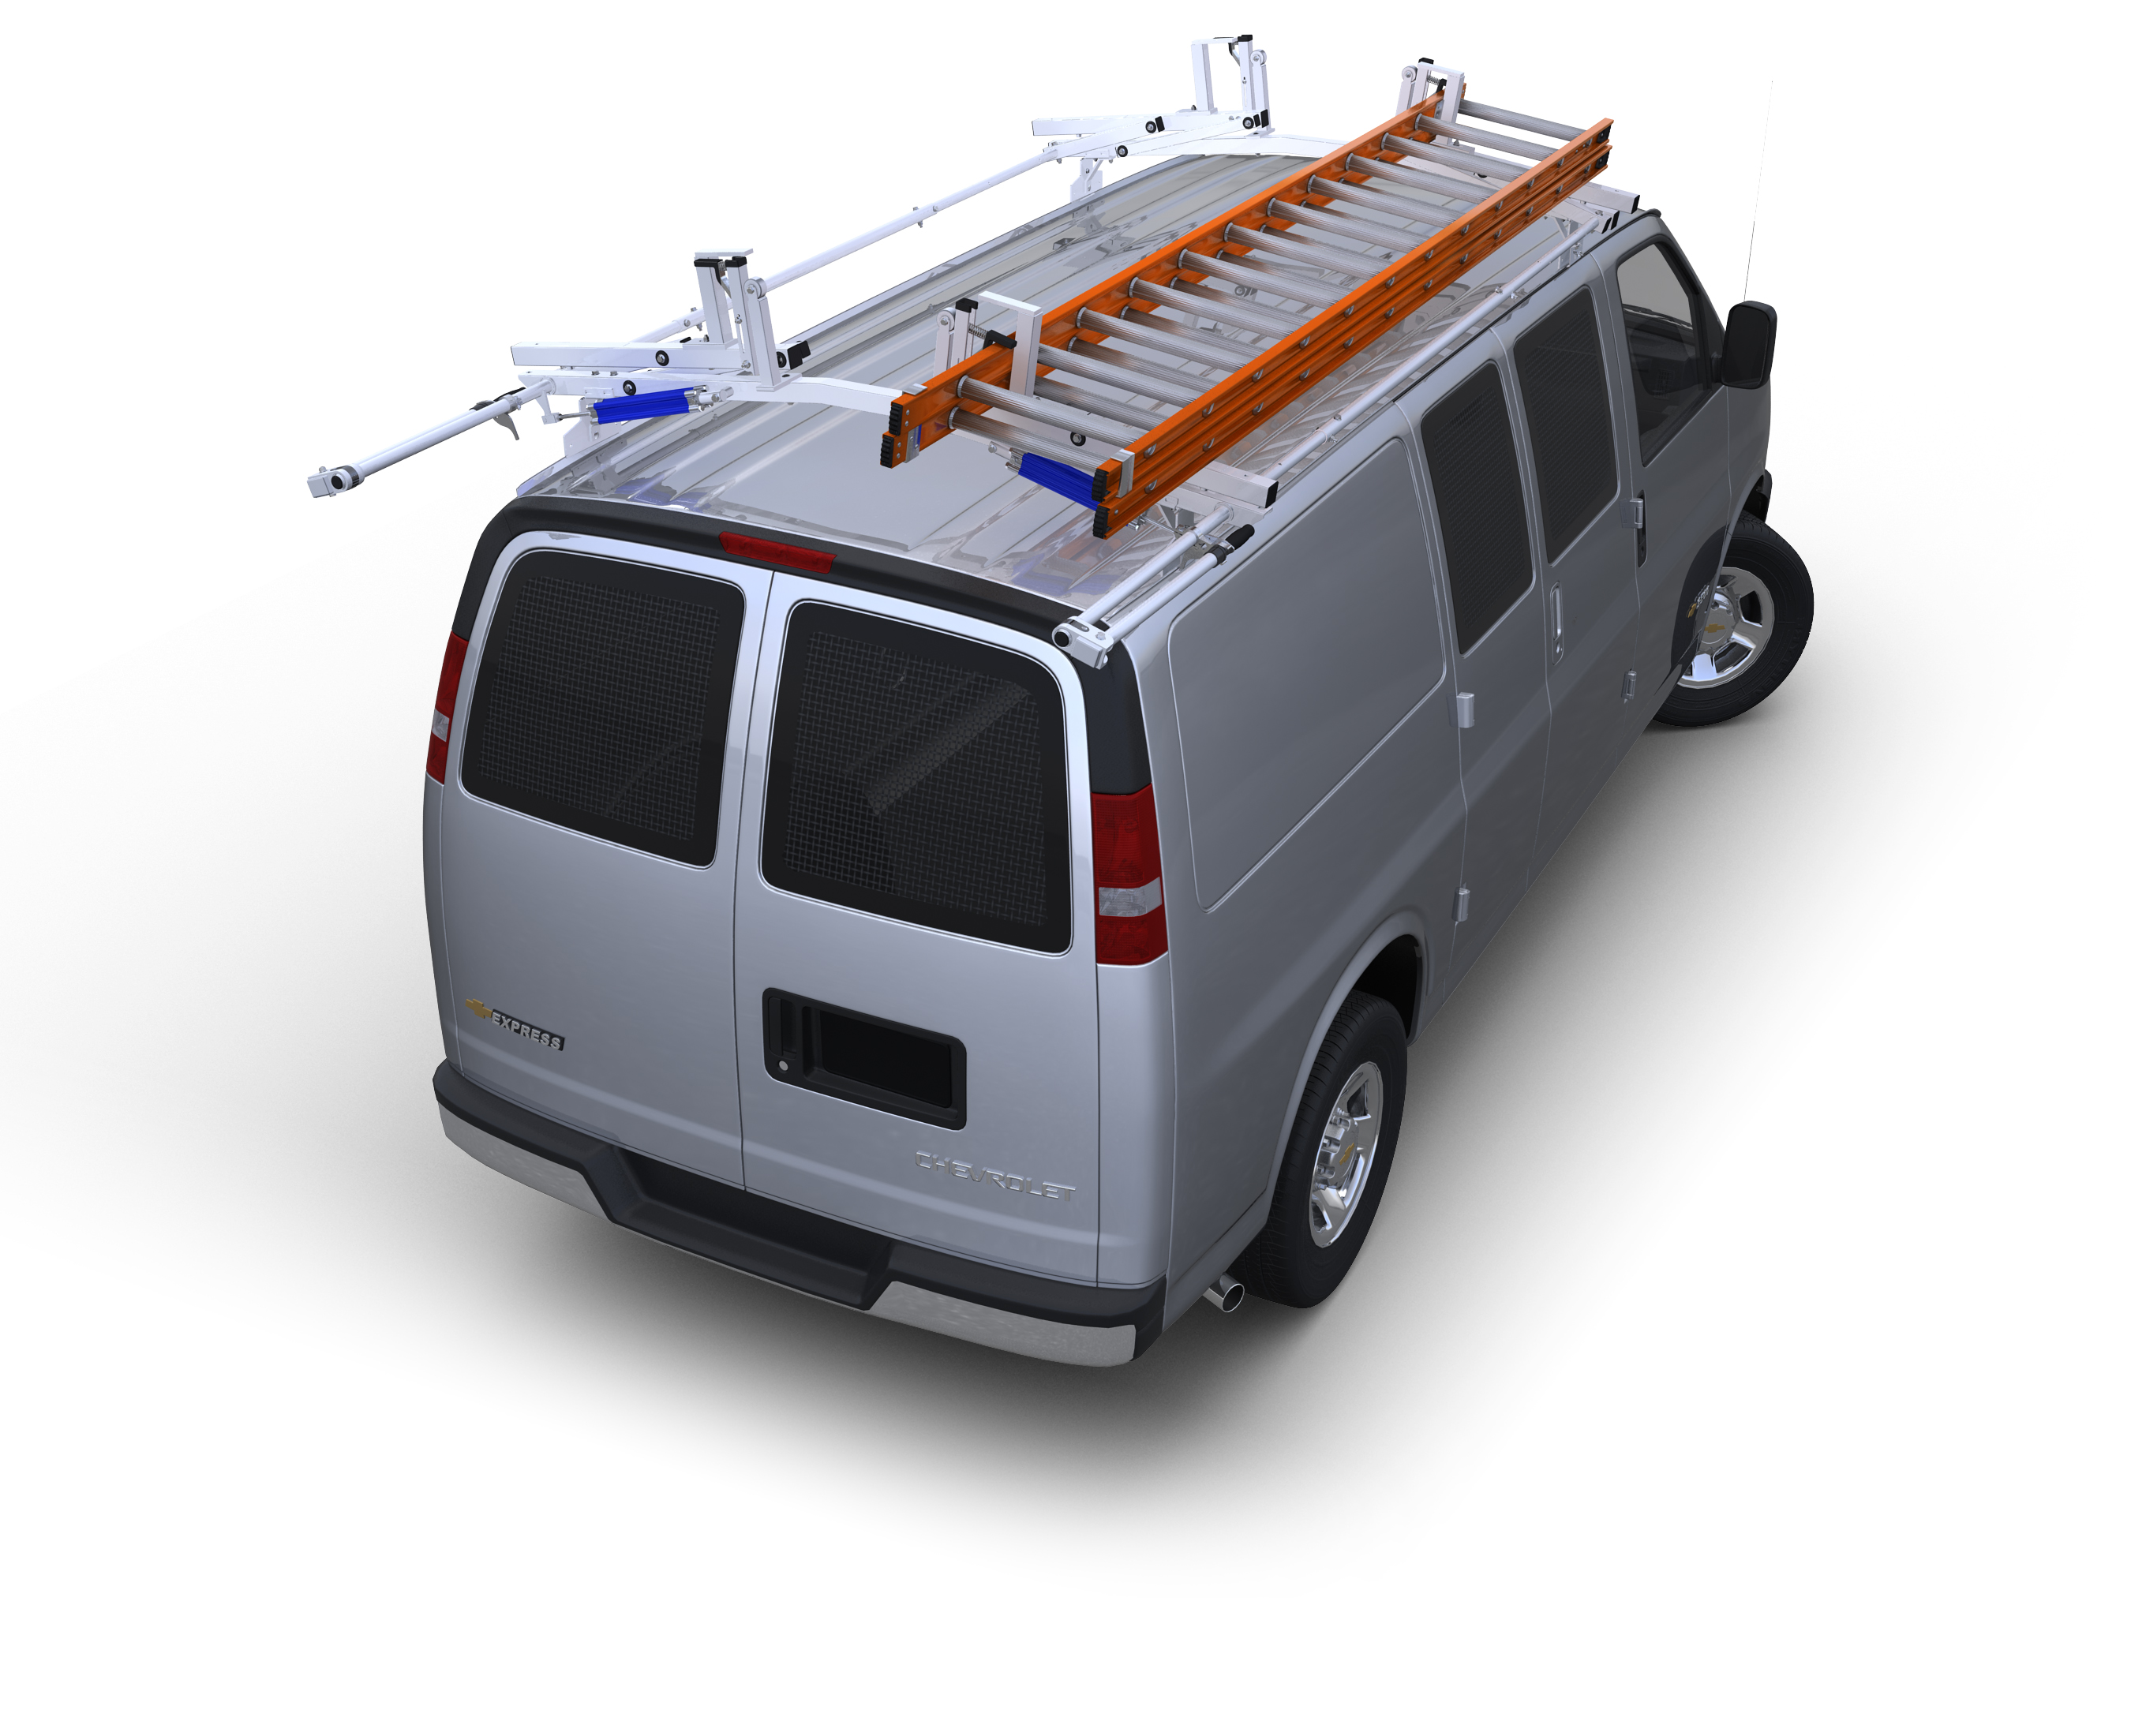 2014 & Newer Transit Connect Aluminum Contour Shelving with Back Panel